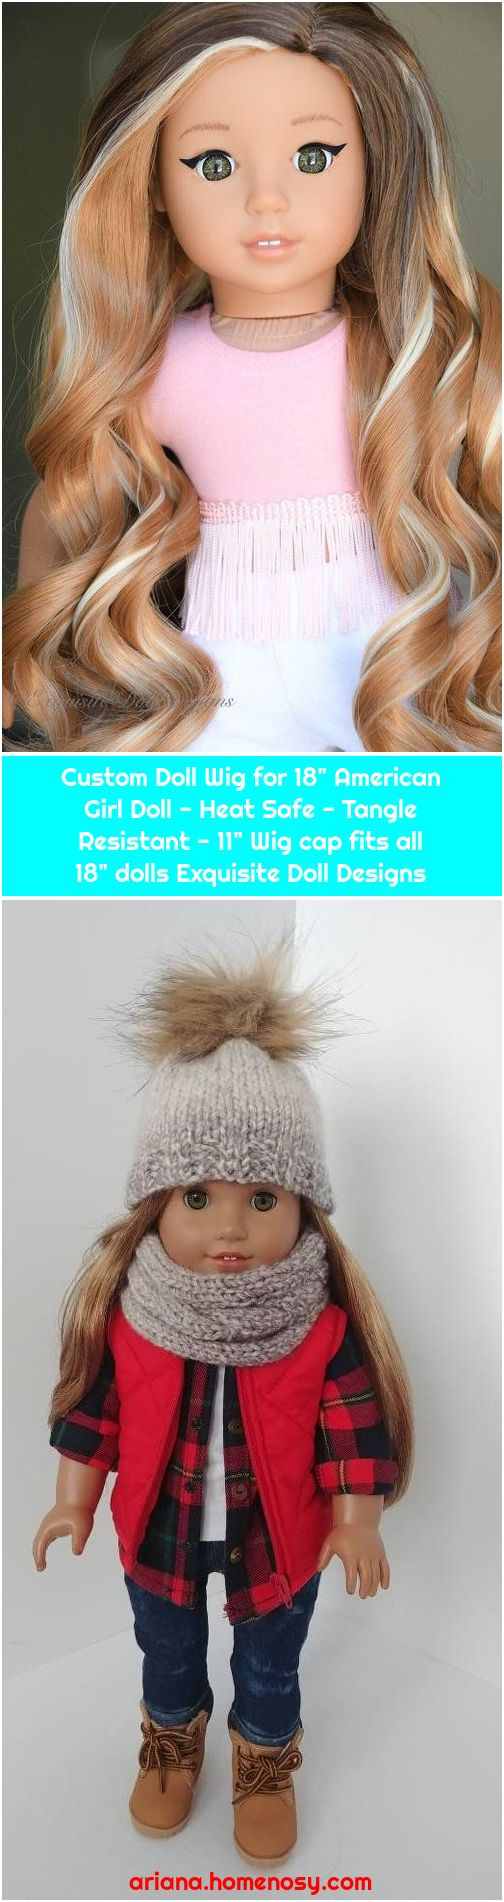 """Custom Doll Wig for 18"""" American Girl Doll - Heat Safe - Tangle Resistant - 11"""" Wig cap fits all 18"""" dolls Exquisite Doll Designs"""